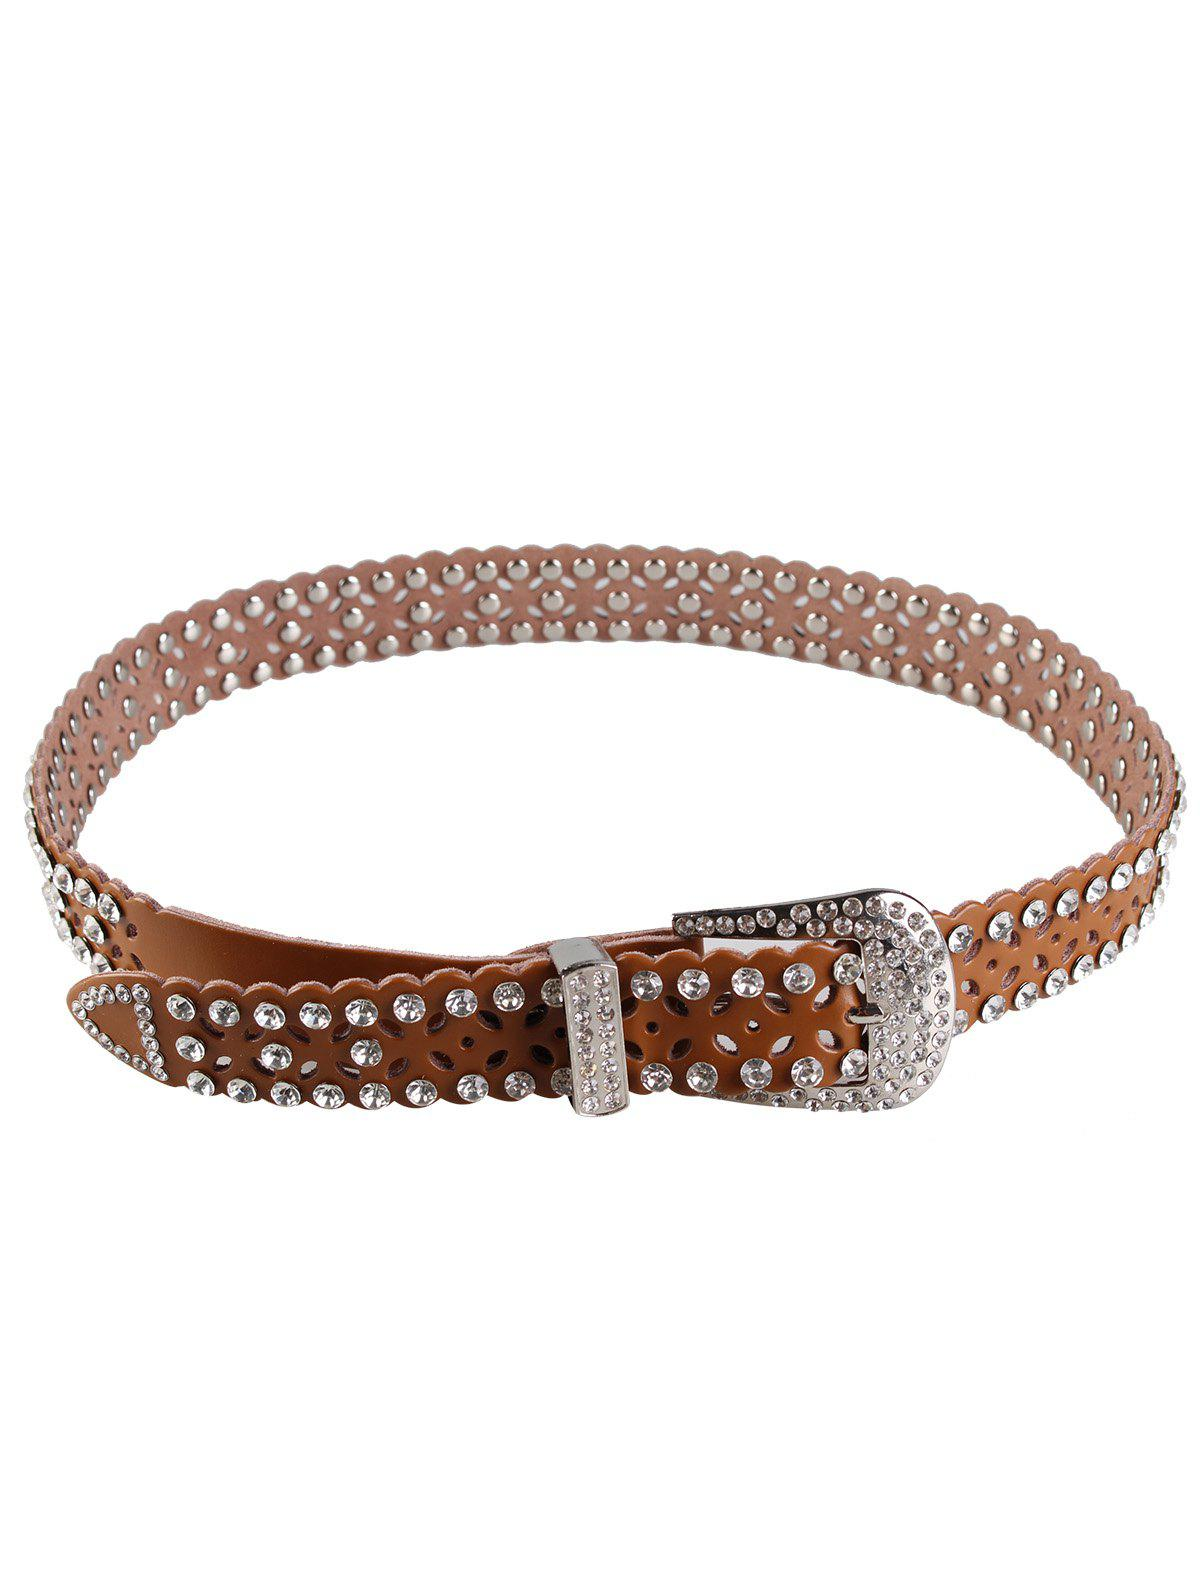 Rhinestone Hollow Out Decorated Faux Leather Waist Belt цена 2017